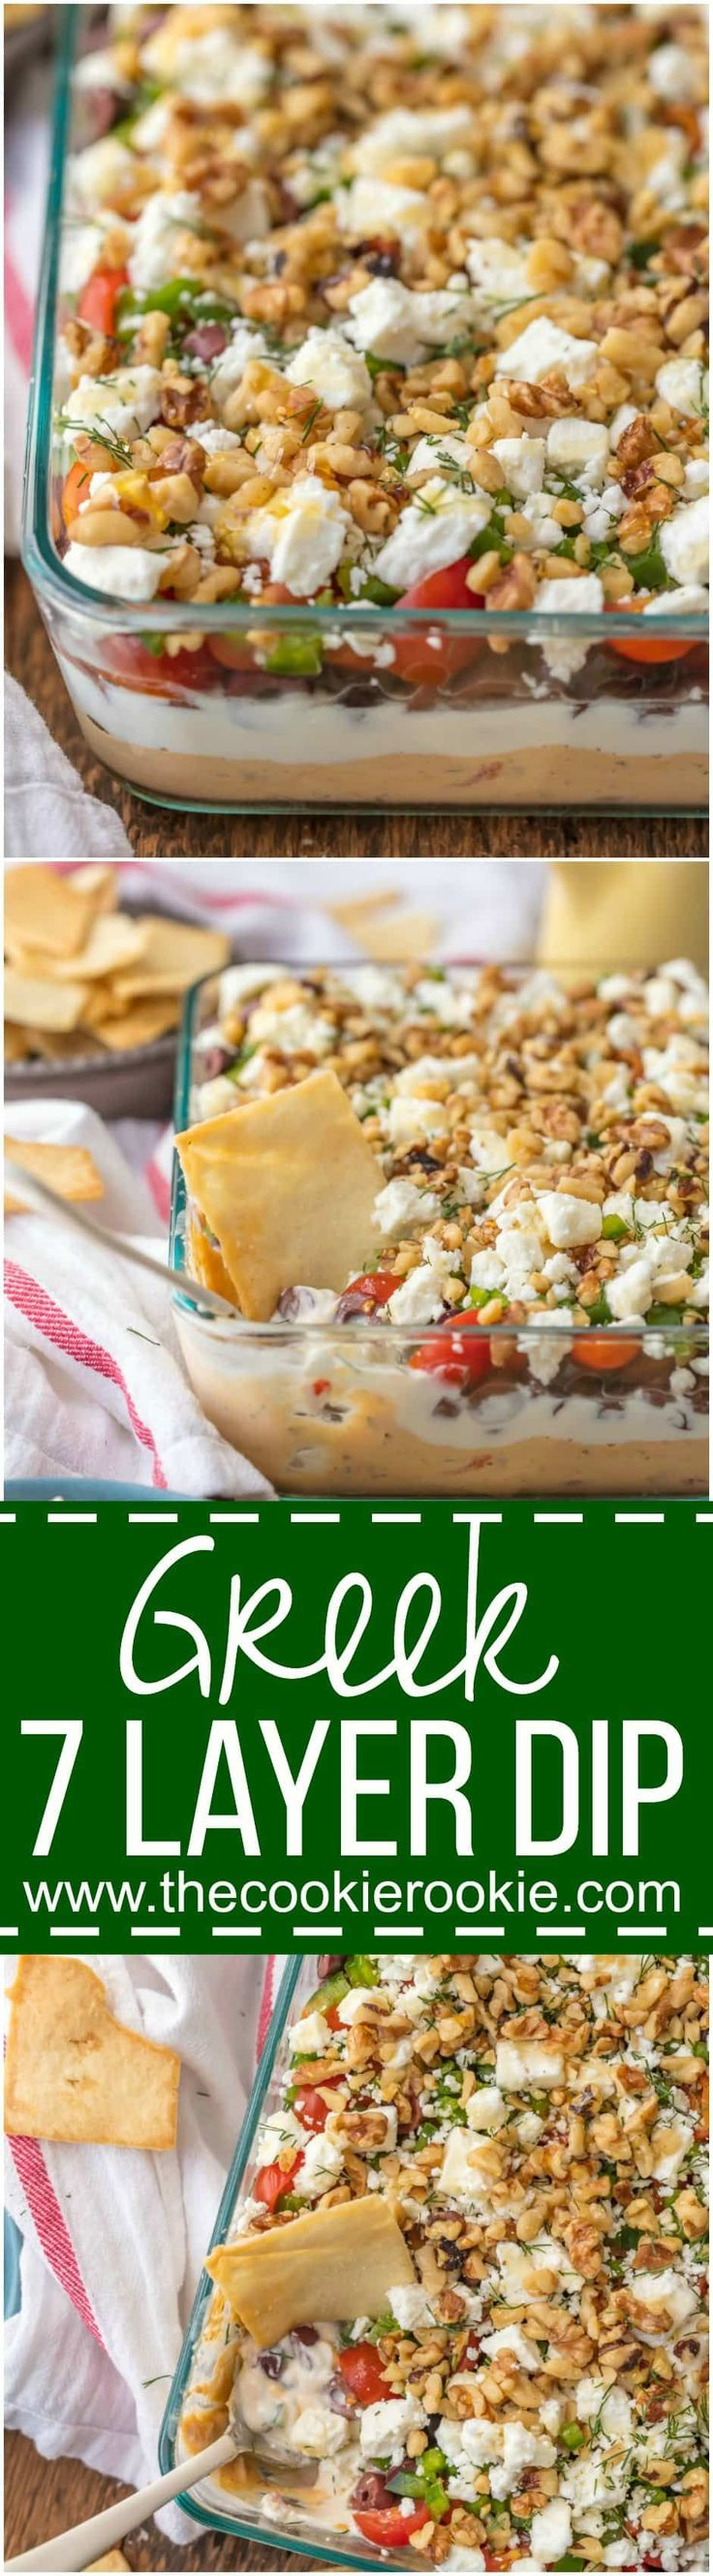 GREEK 7 LAYER DIP is a fun twist on a classic appetizer. This delicious dip is the perfect sharable app for Christmas, NYE, or any reason for tailgating. Layers of hummus, greek yogurt, feta, and so m